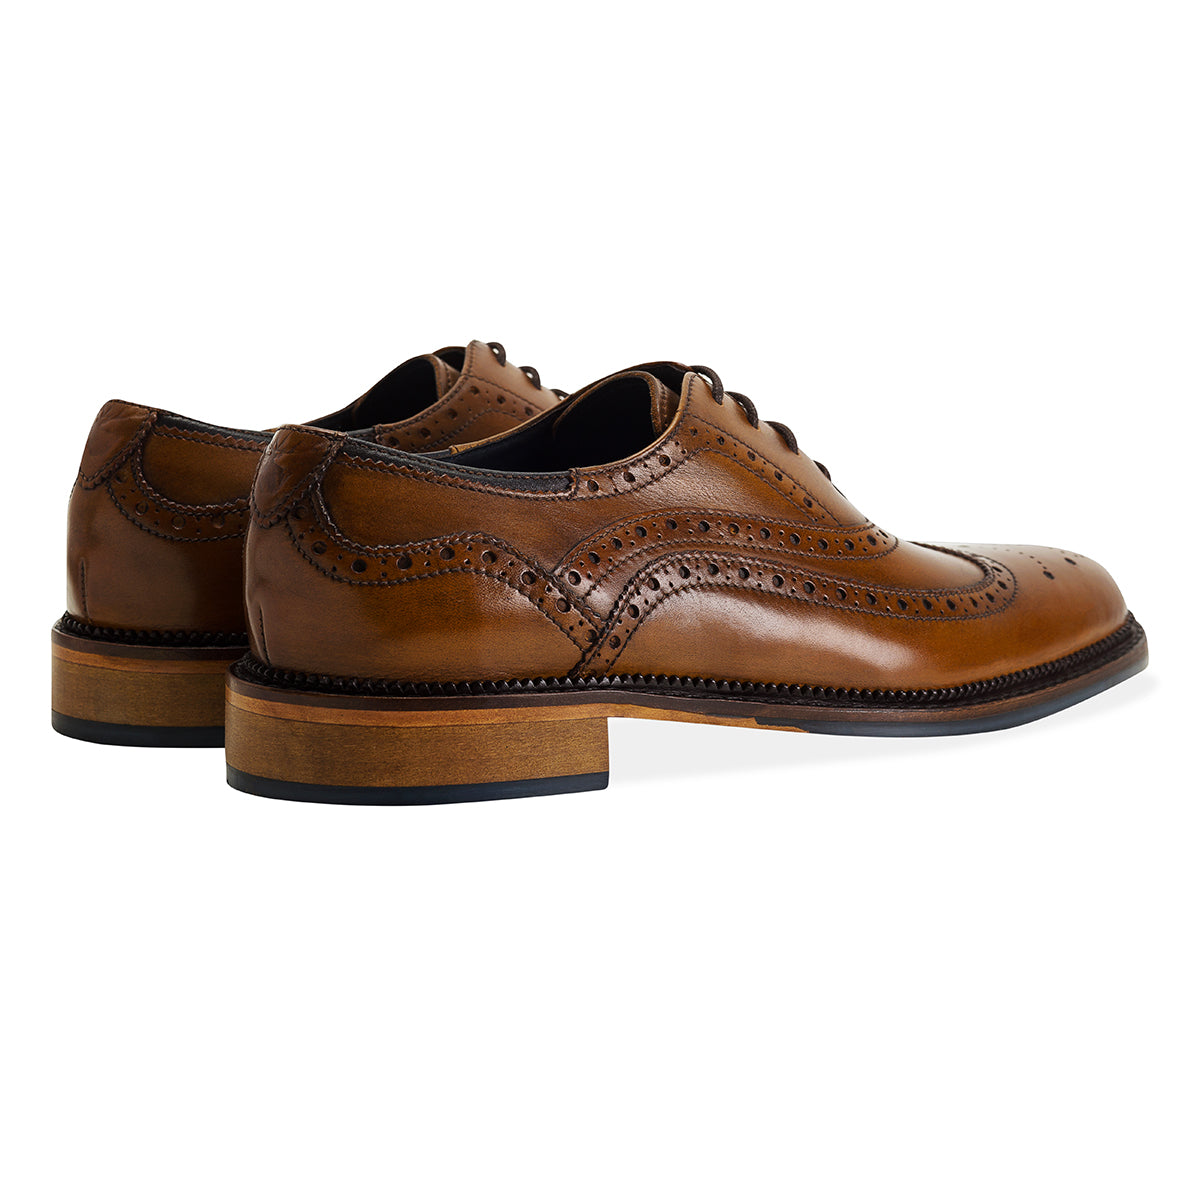 bropgue pattern Chatworth Tan Brogue Shoe by Goodwin Smith